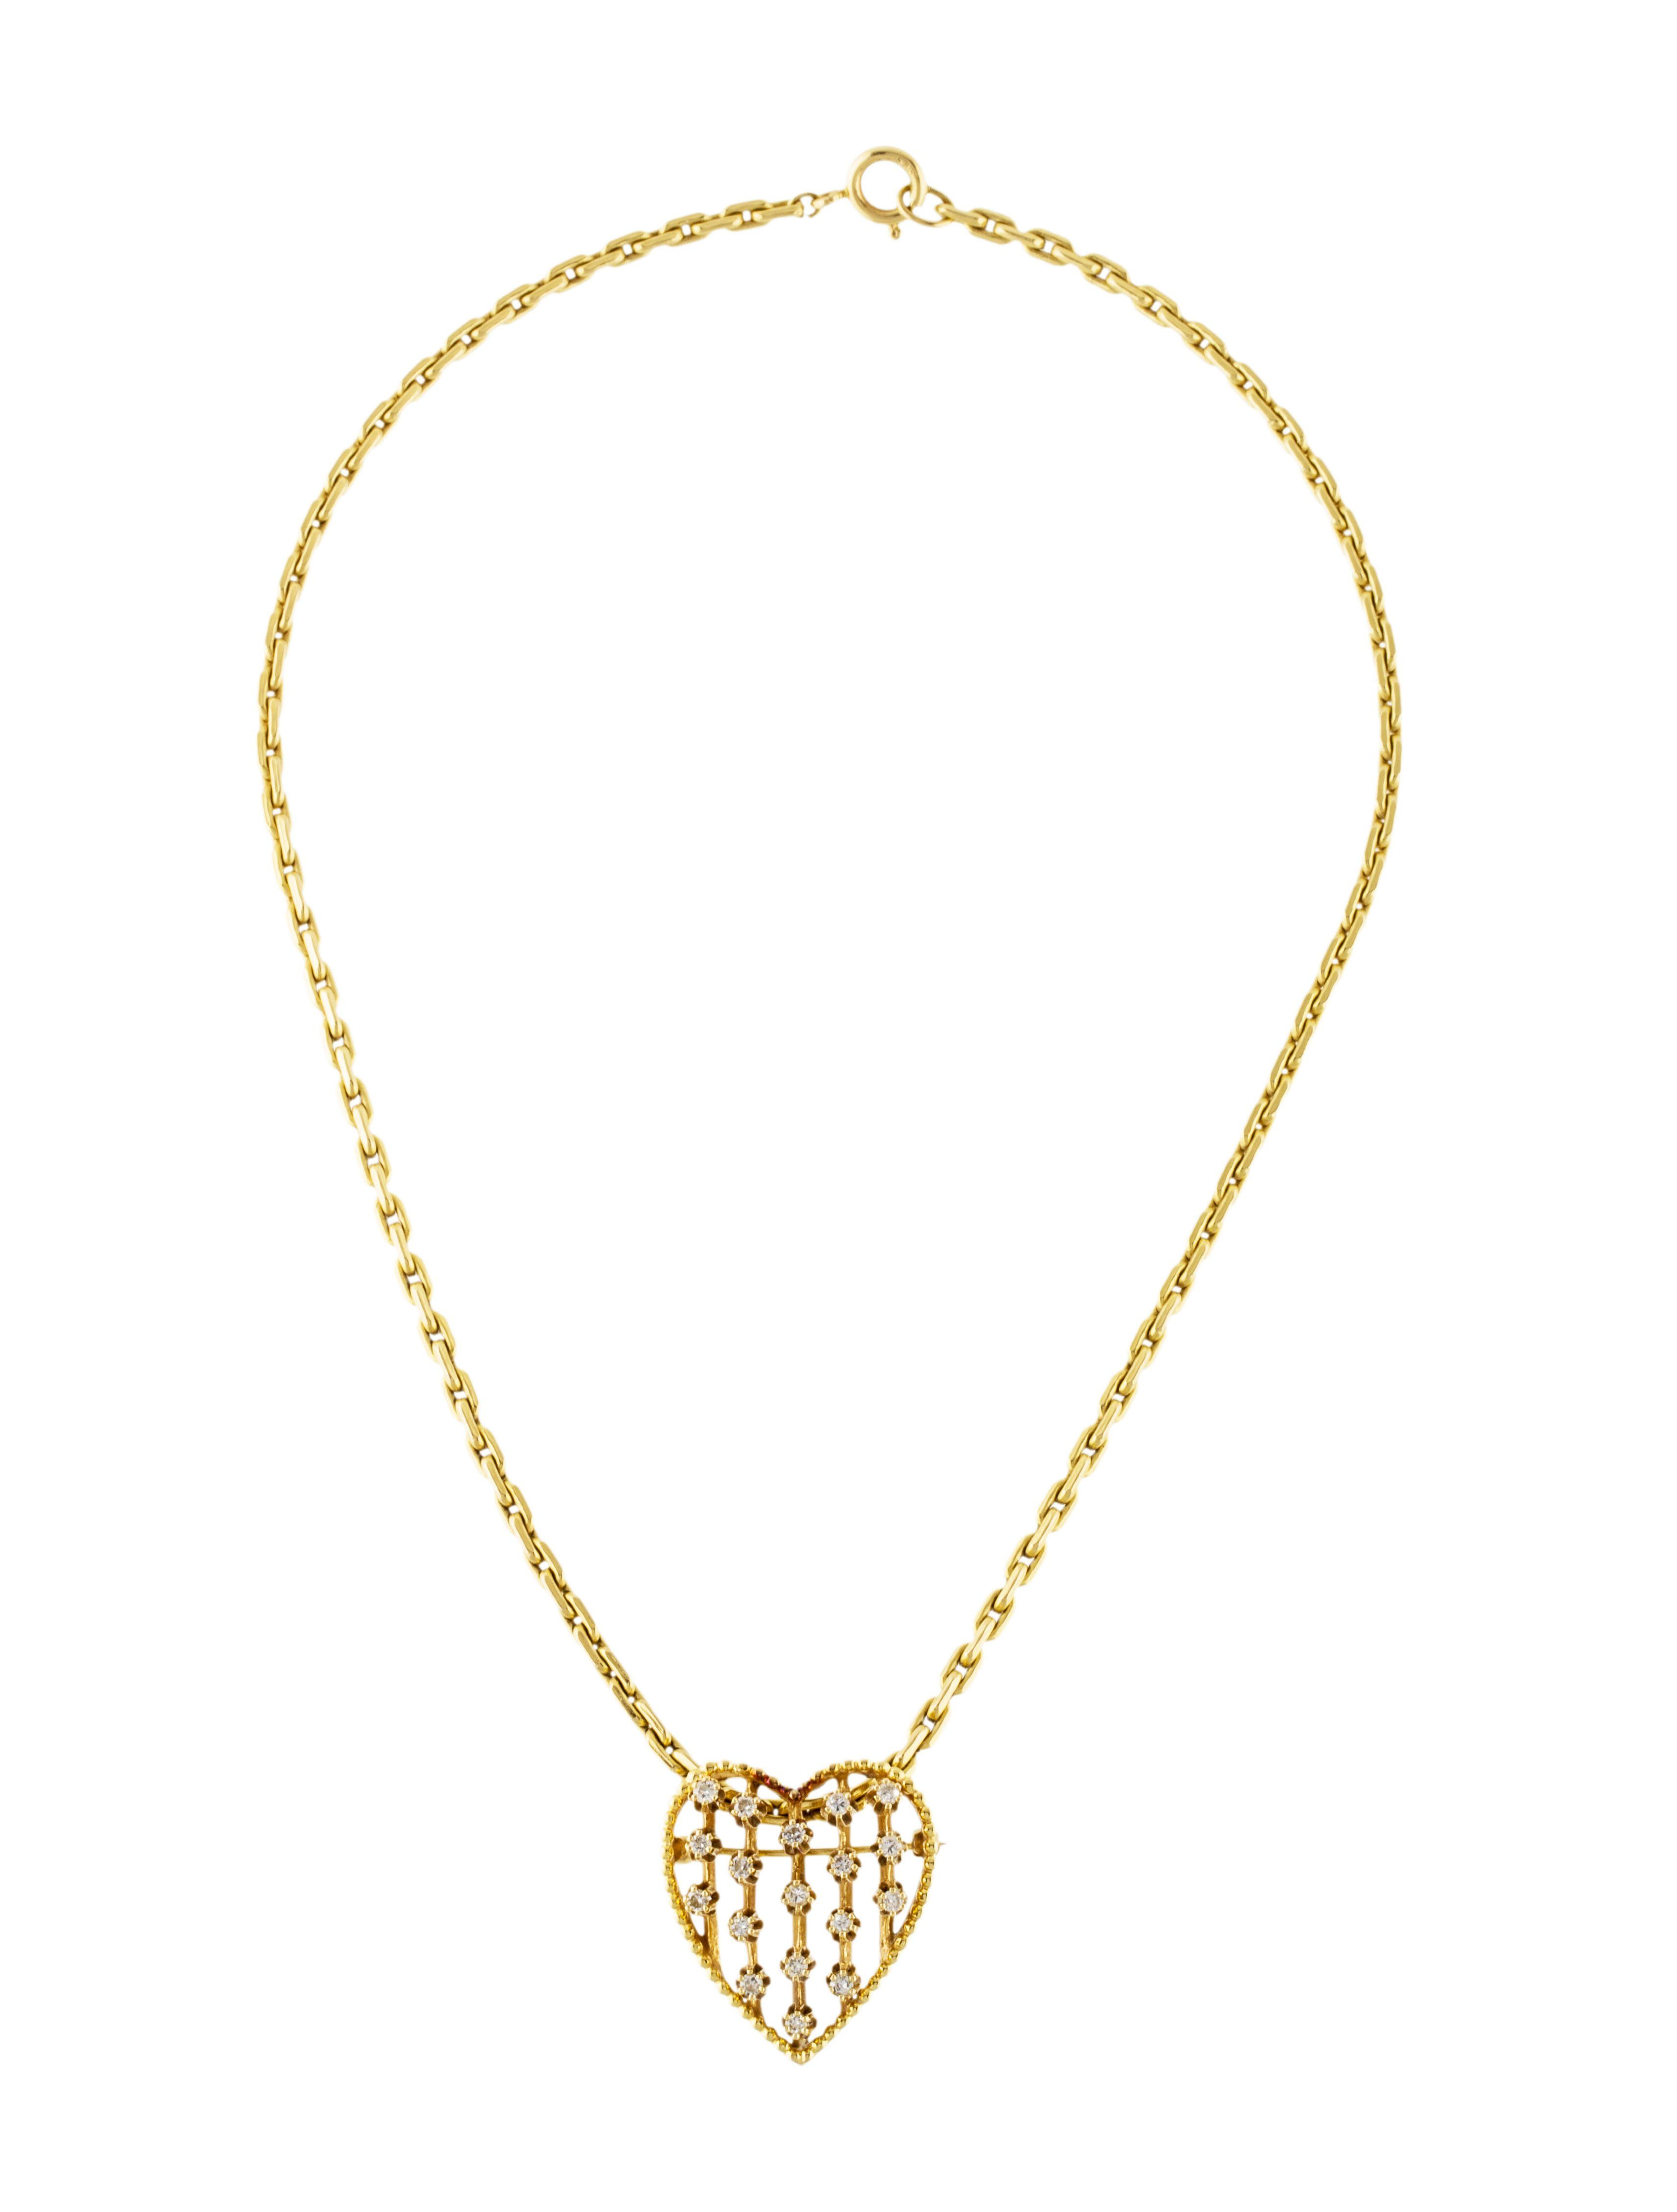 14k Yellow Gold Chain Link Necklace Featuring 0 63 Carats Of Round Brilliant Diamonds A Heart Pendant Diamond Heart Pendant Gold Diamond Heart Pendant Necklace